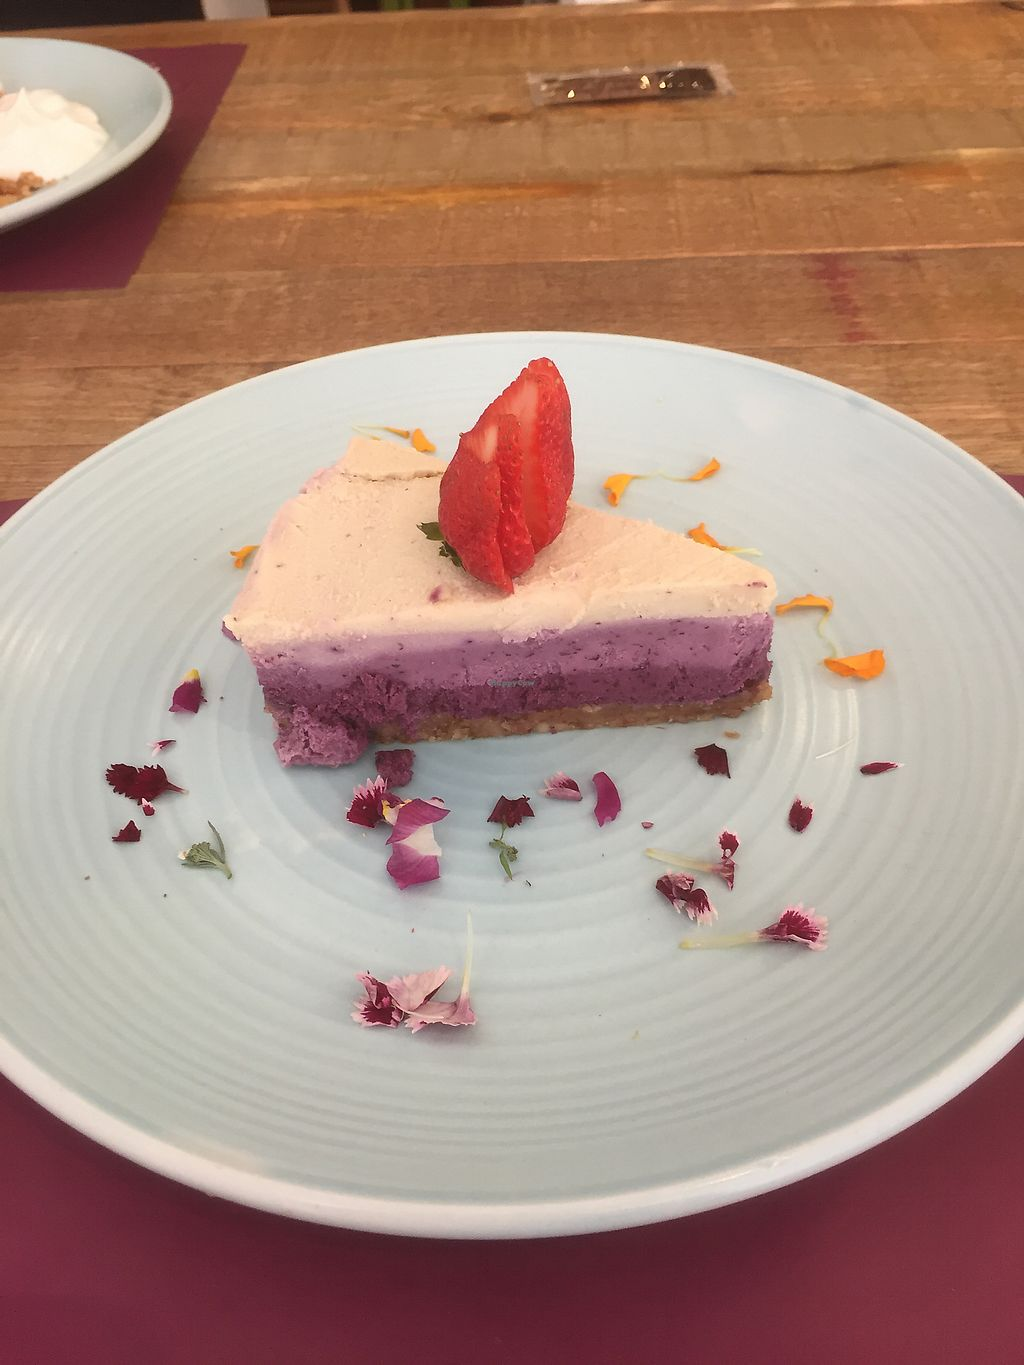 "Photo of Beet Vegetariano  by <a href=""/members/profile/NuttyNan"">NuttyNan</a> <br/>Todays dessert <br/> September 20, 2017  - <a href='/contact/abuse/image/1102/306342'>Report</a>"